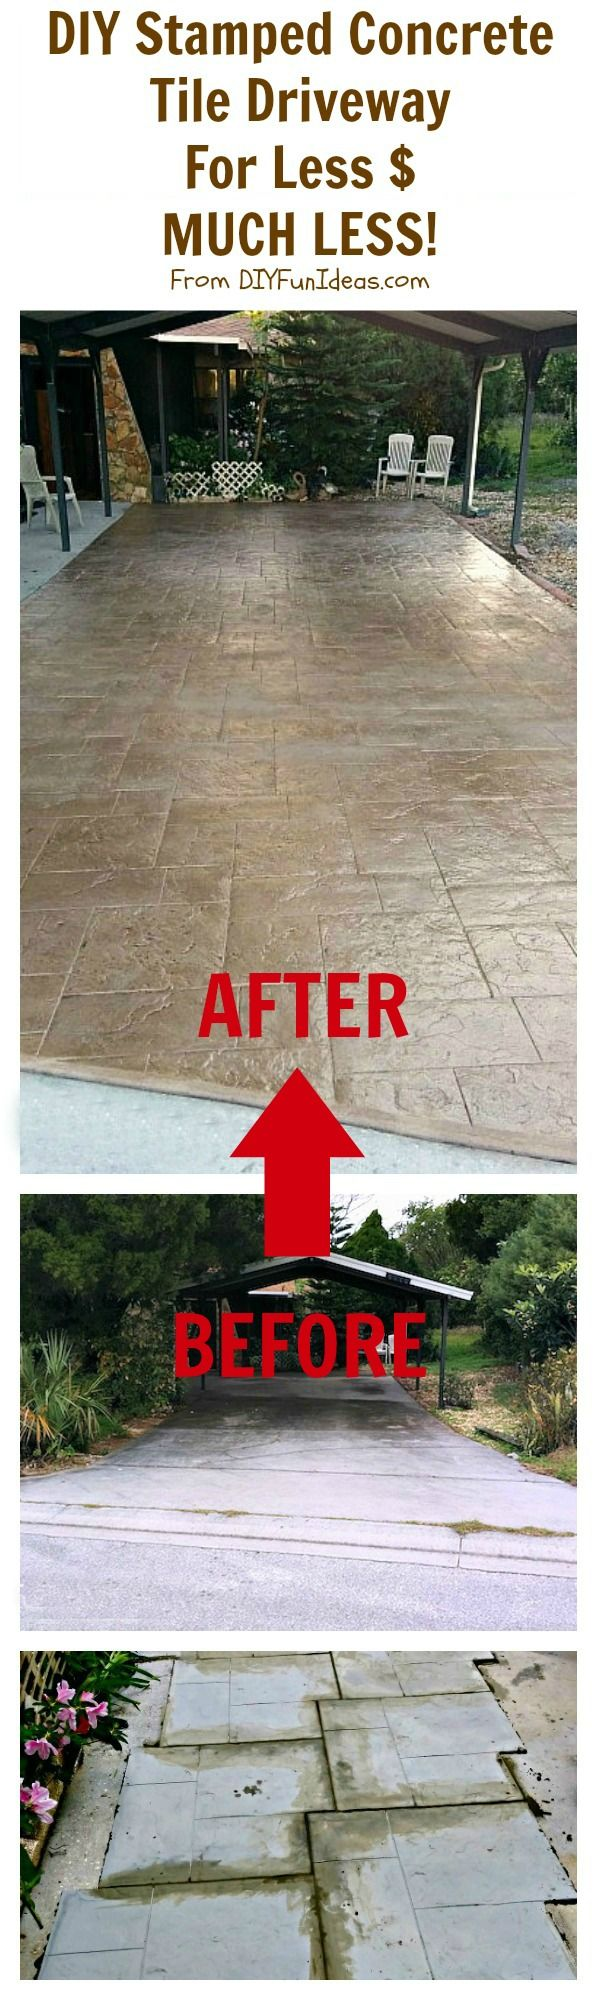 Terrasse Beton Video Gorgeous Diy Stamped Concrete Tile Driveway For Less Much Less